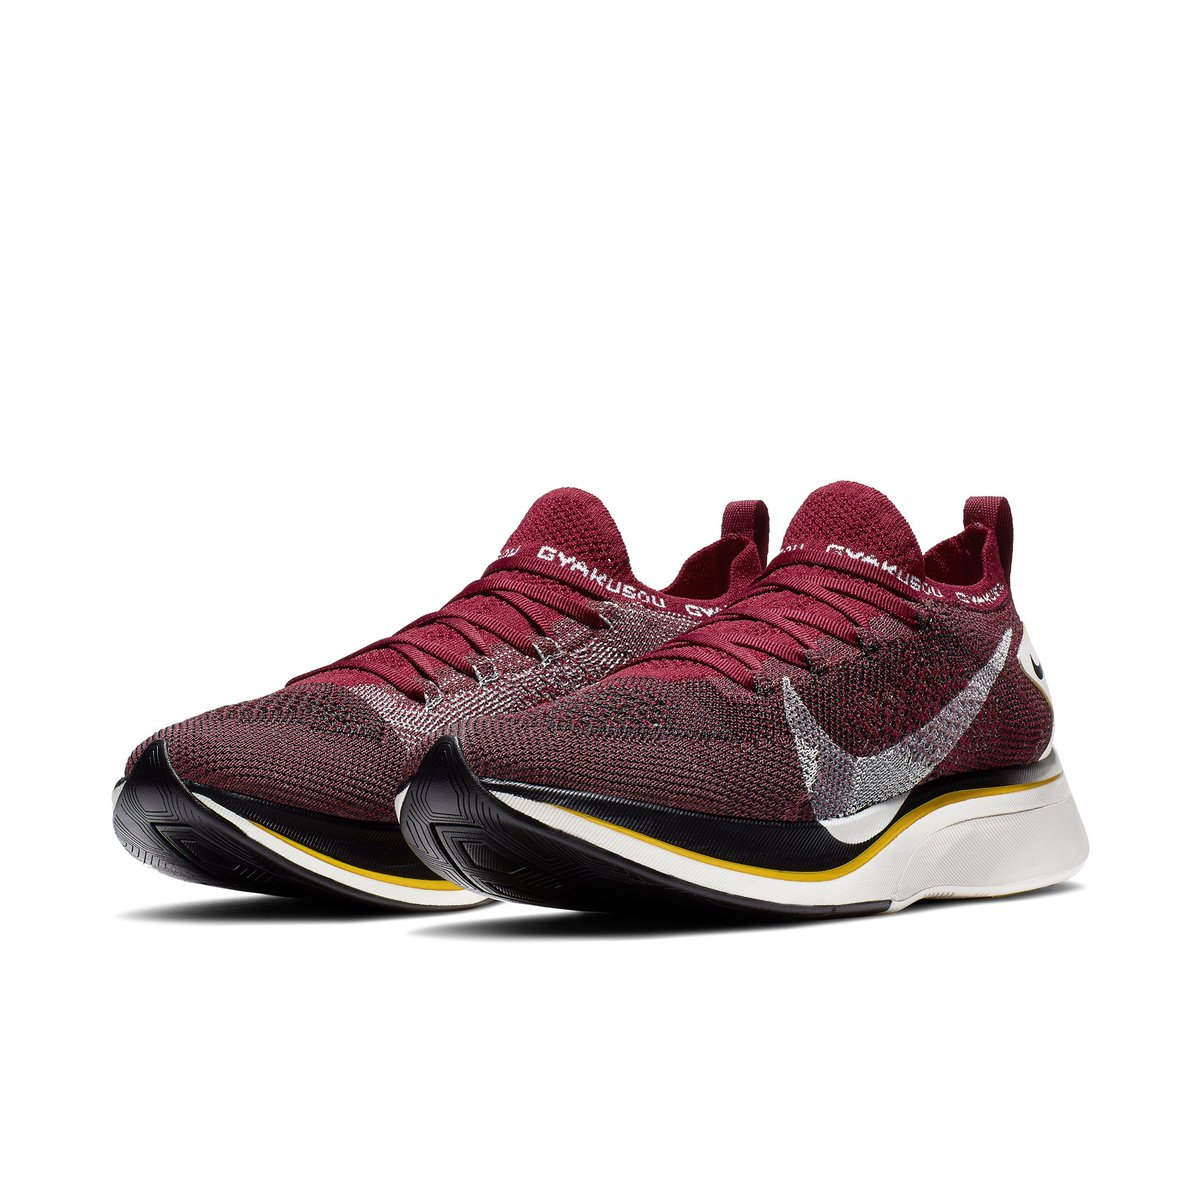 promo code 200ae d3a28 the latest undercover x nike gyakusou collection features the pegasus turbo  and vaporfly 4 and releases